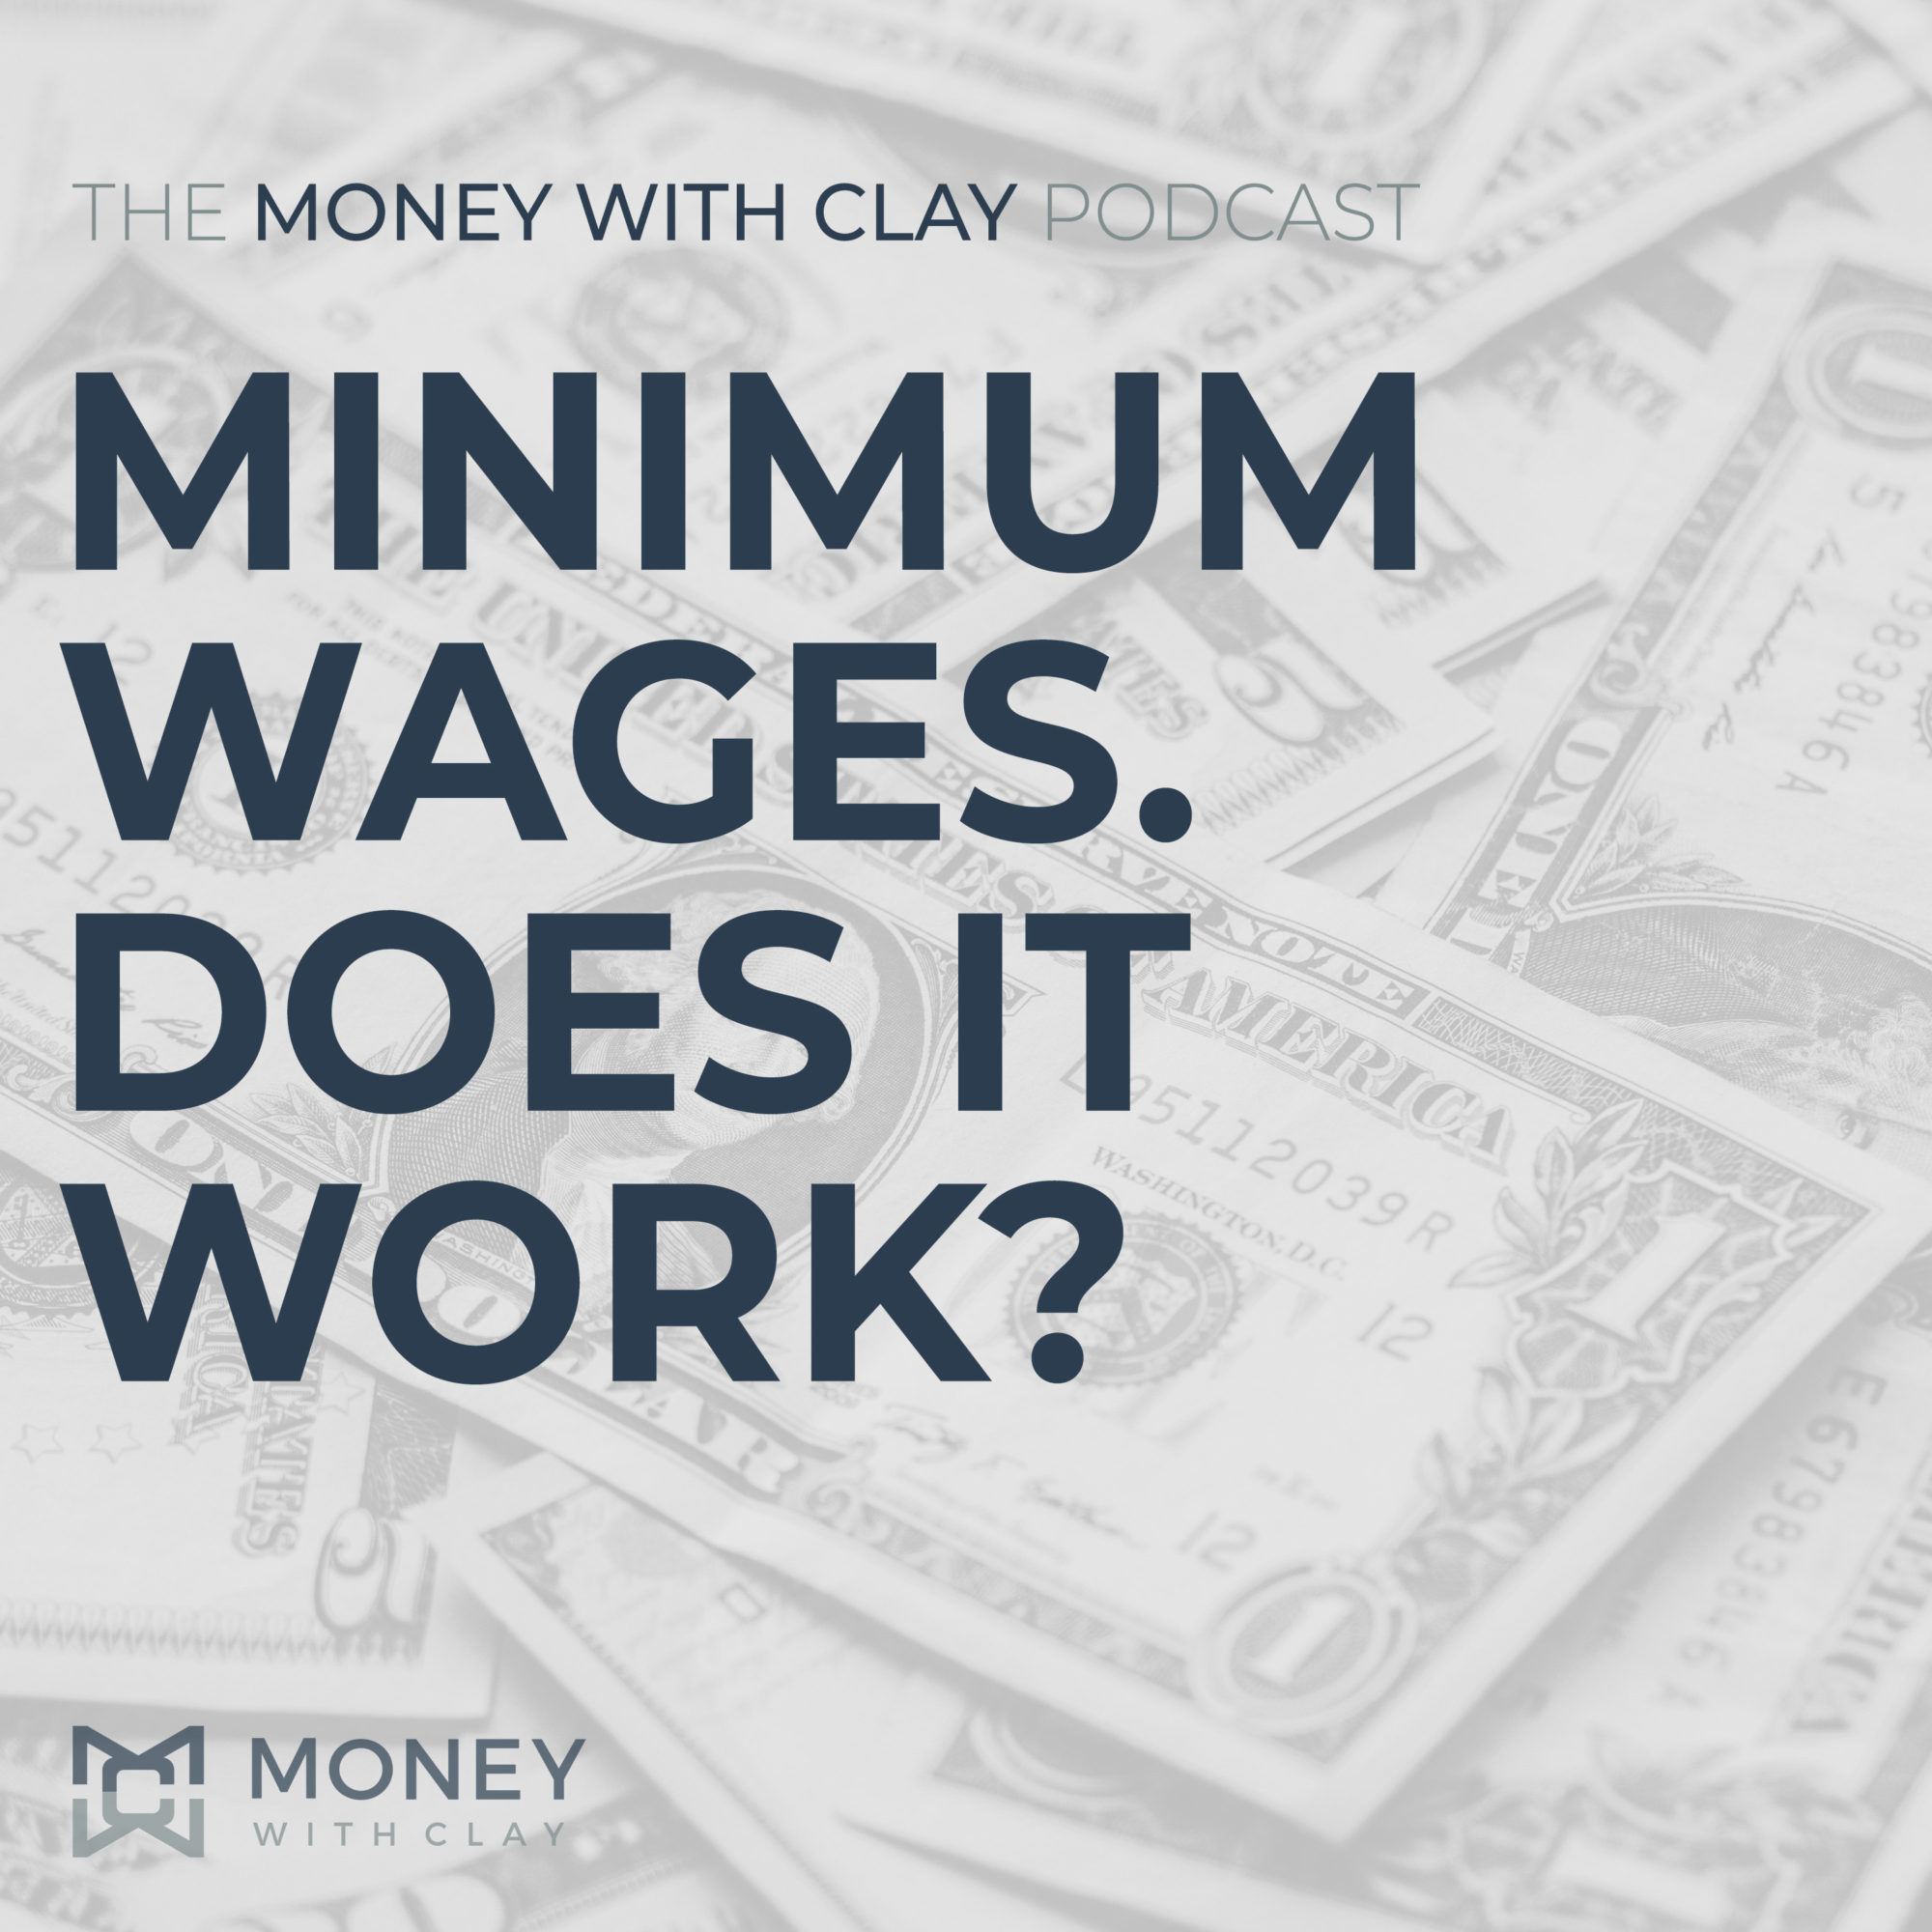 #051 - Minimum Wages. Does It Work?